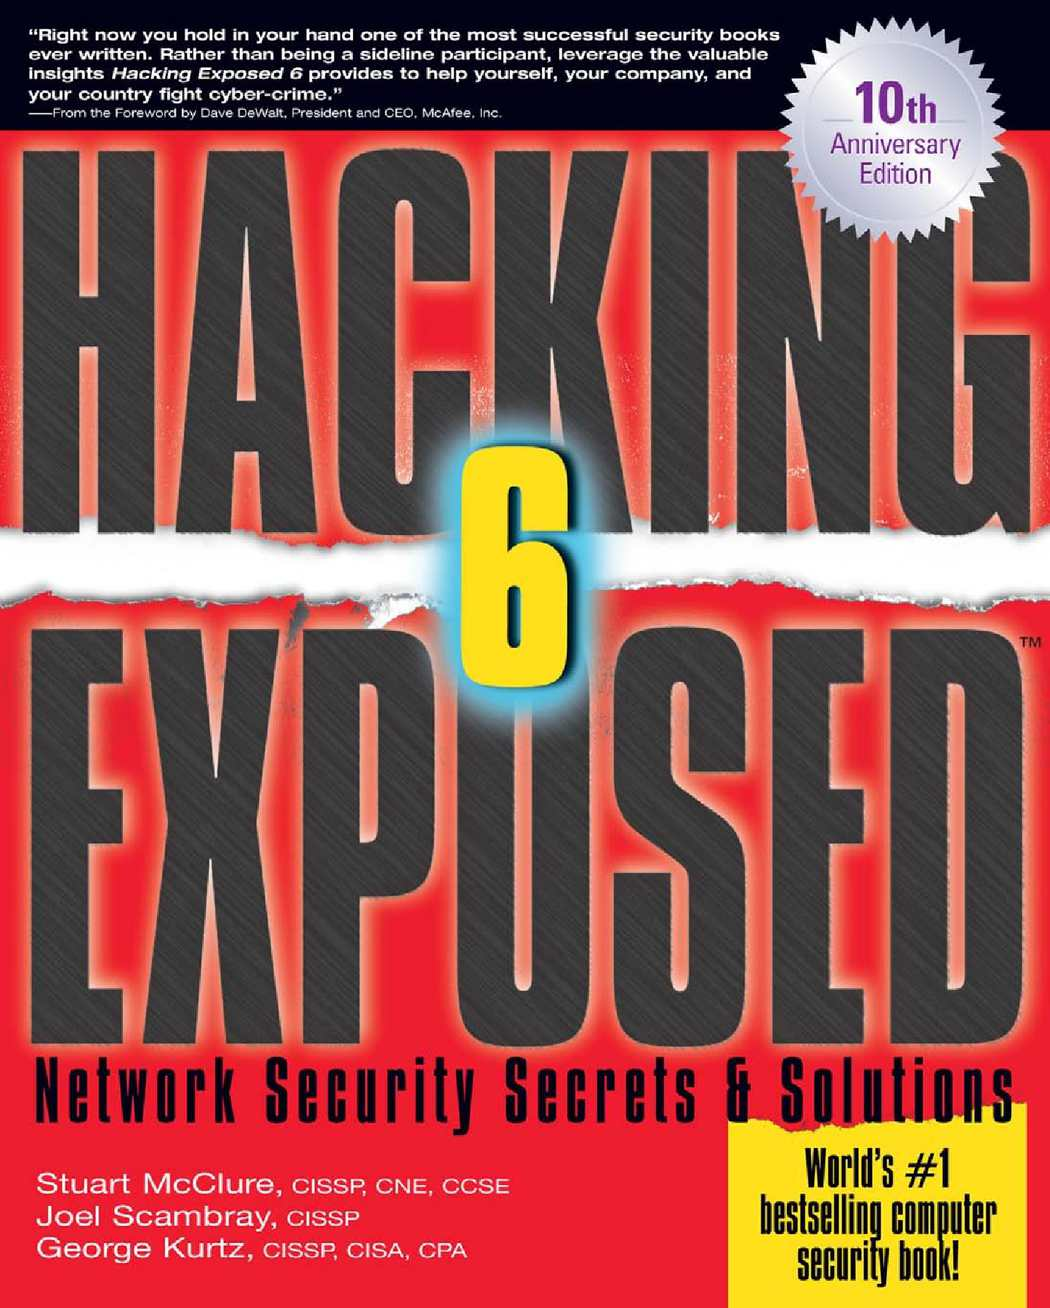 Calaméo - Hacking Exposed 6éme edition - Network Security